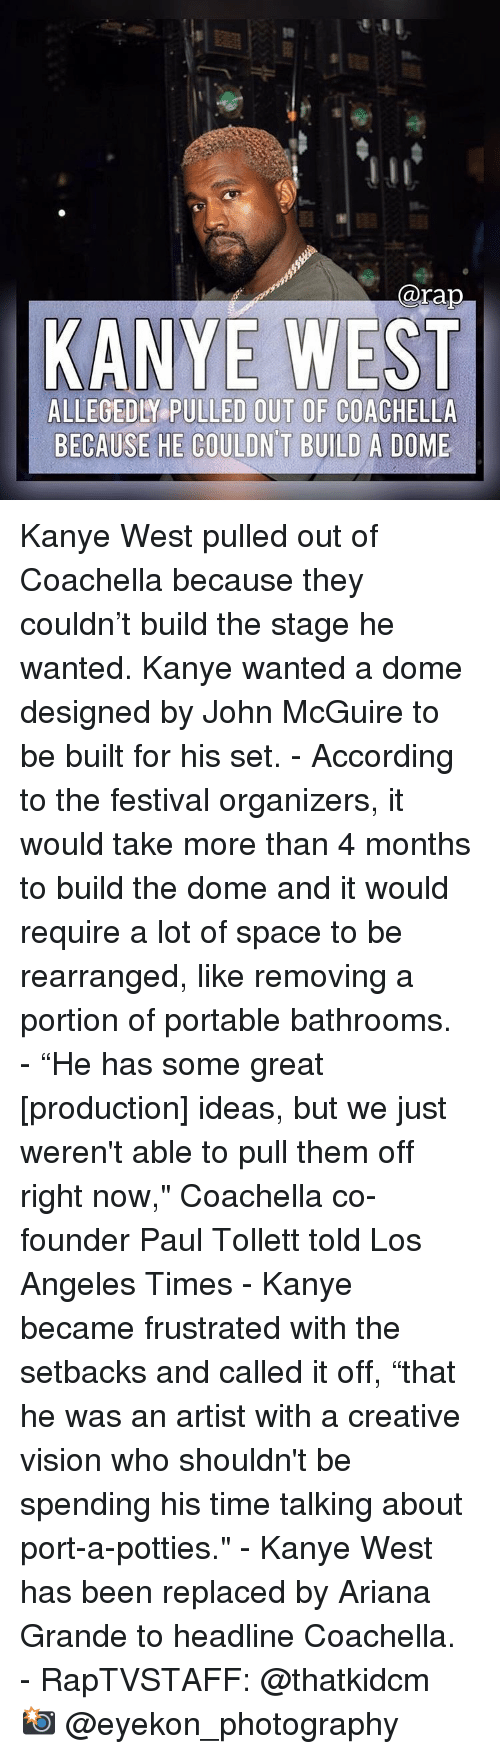 "Coachella: @rap  KANYE WEST  ALLEGEDLY PULLED OUT OF COACHELLA  BECAUSE HE COULDN T BUILD A DOME Kanye West pulled out of Coachella because they couldn't build the stage he wanted. Kanye wanted a dome designed by John McGuire to be built for his set.⁣ -⁣ According to the festival organizers, it would take more than 4 months to build the dome and it would require a lot of space to be rearranged, like removing a portion of portable bathrooms.⁣ -⁣ ""He has some great [production] ideas, but we just weren't able to pull them off right now,"" Coachella co-founder Paul Tollett told Los Angeles Times⁣ -⁣ Kanye became frustrated with the setbacks and called it off, ""that he was an artist with a creative vision who shouldn't be spending his time talking about port-a-potties.""⁣ -⁣ Kanye West has been replaced by Ariana Grande to headline Coachella.⁣ -⁣ RapTVSTAFF: @thatkidcm⁣ 📸 @eyekon_photography⁣"